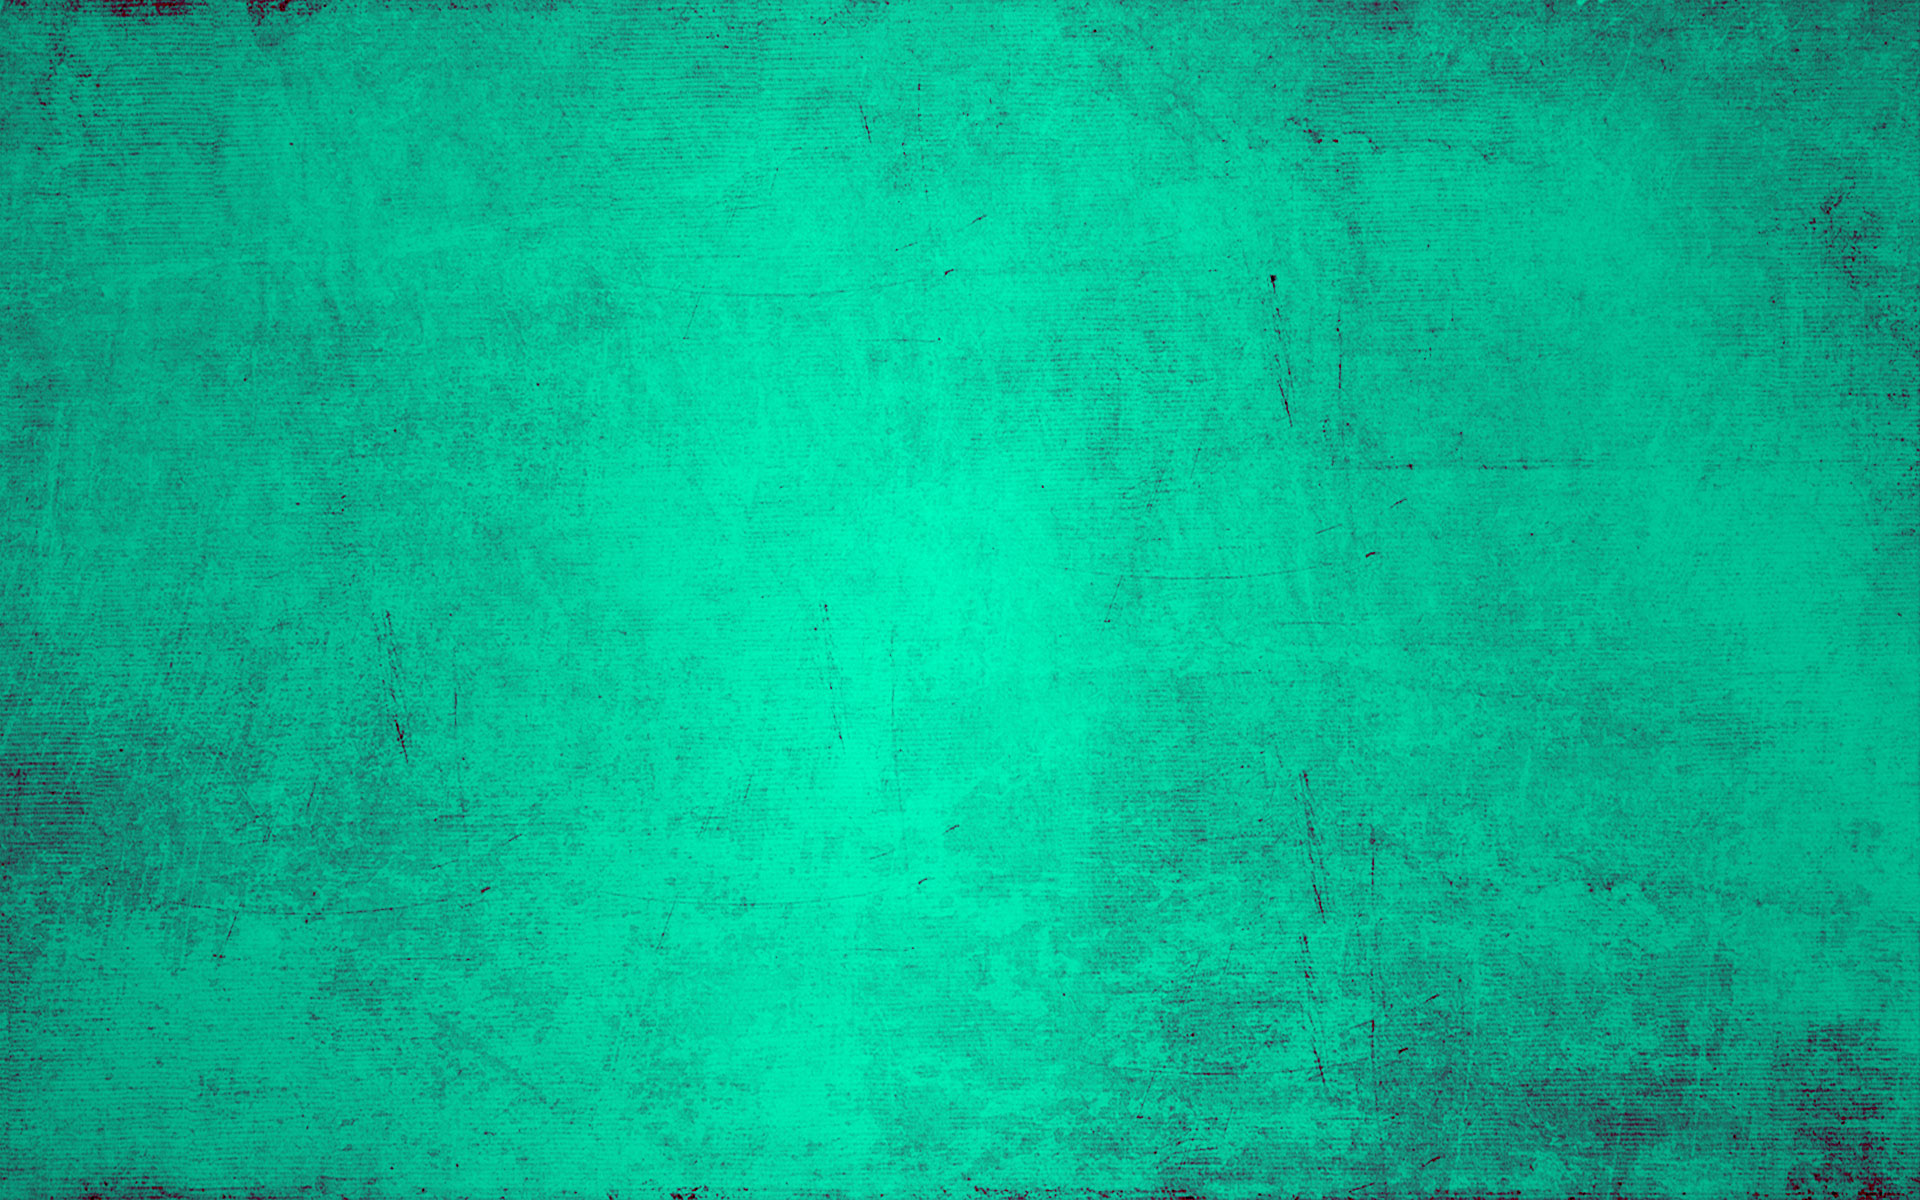 Pin 1152x864 Grunge Turquoise Texture Desktop Pc And Mac Wallpaper ...